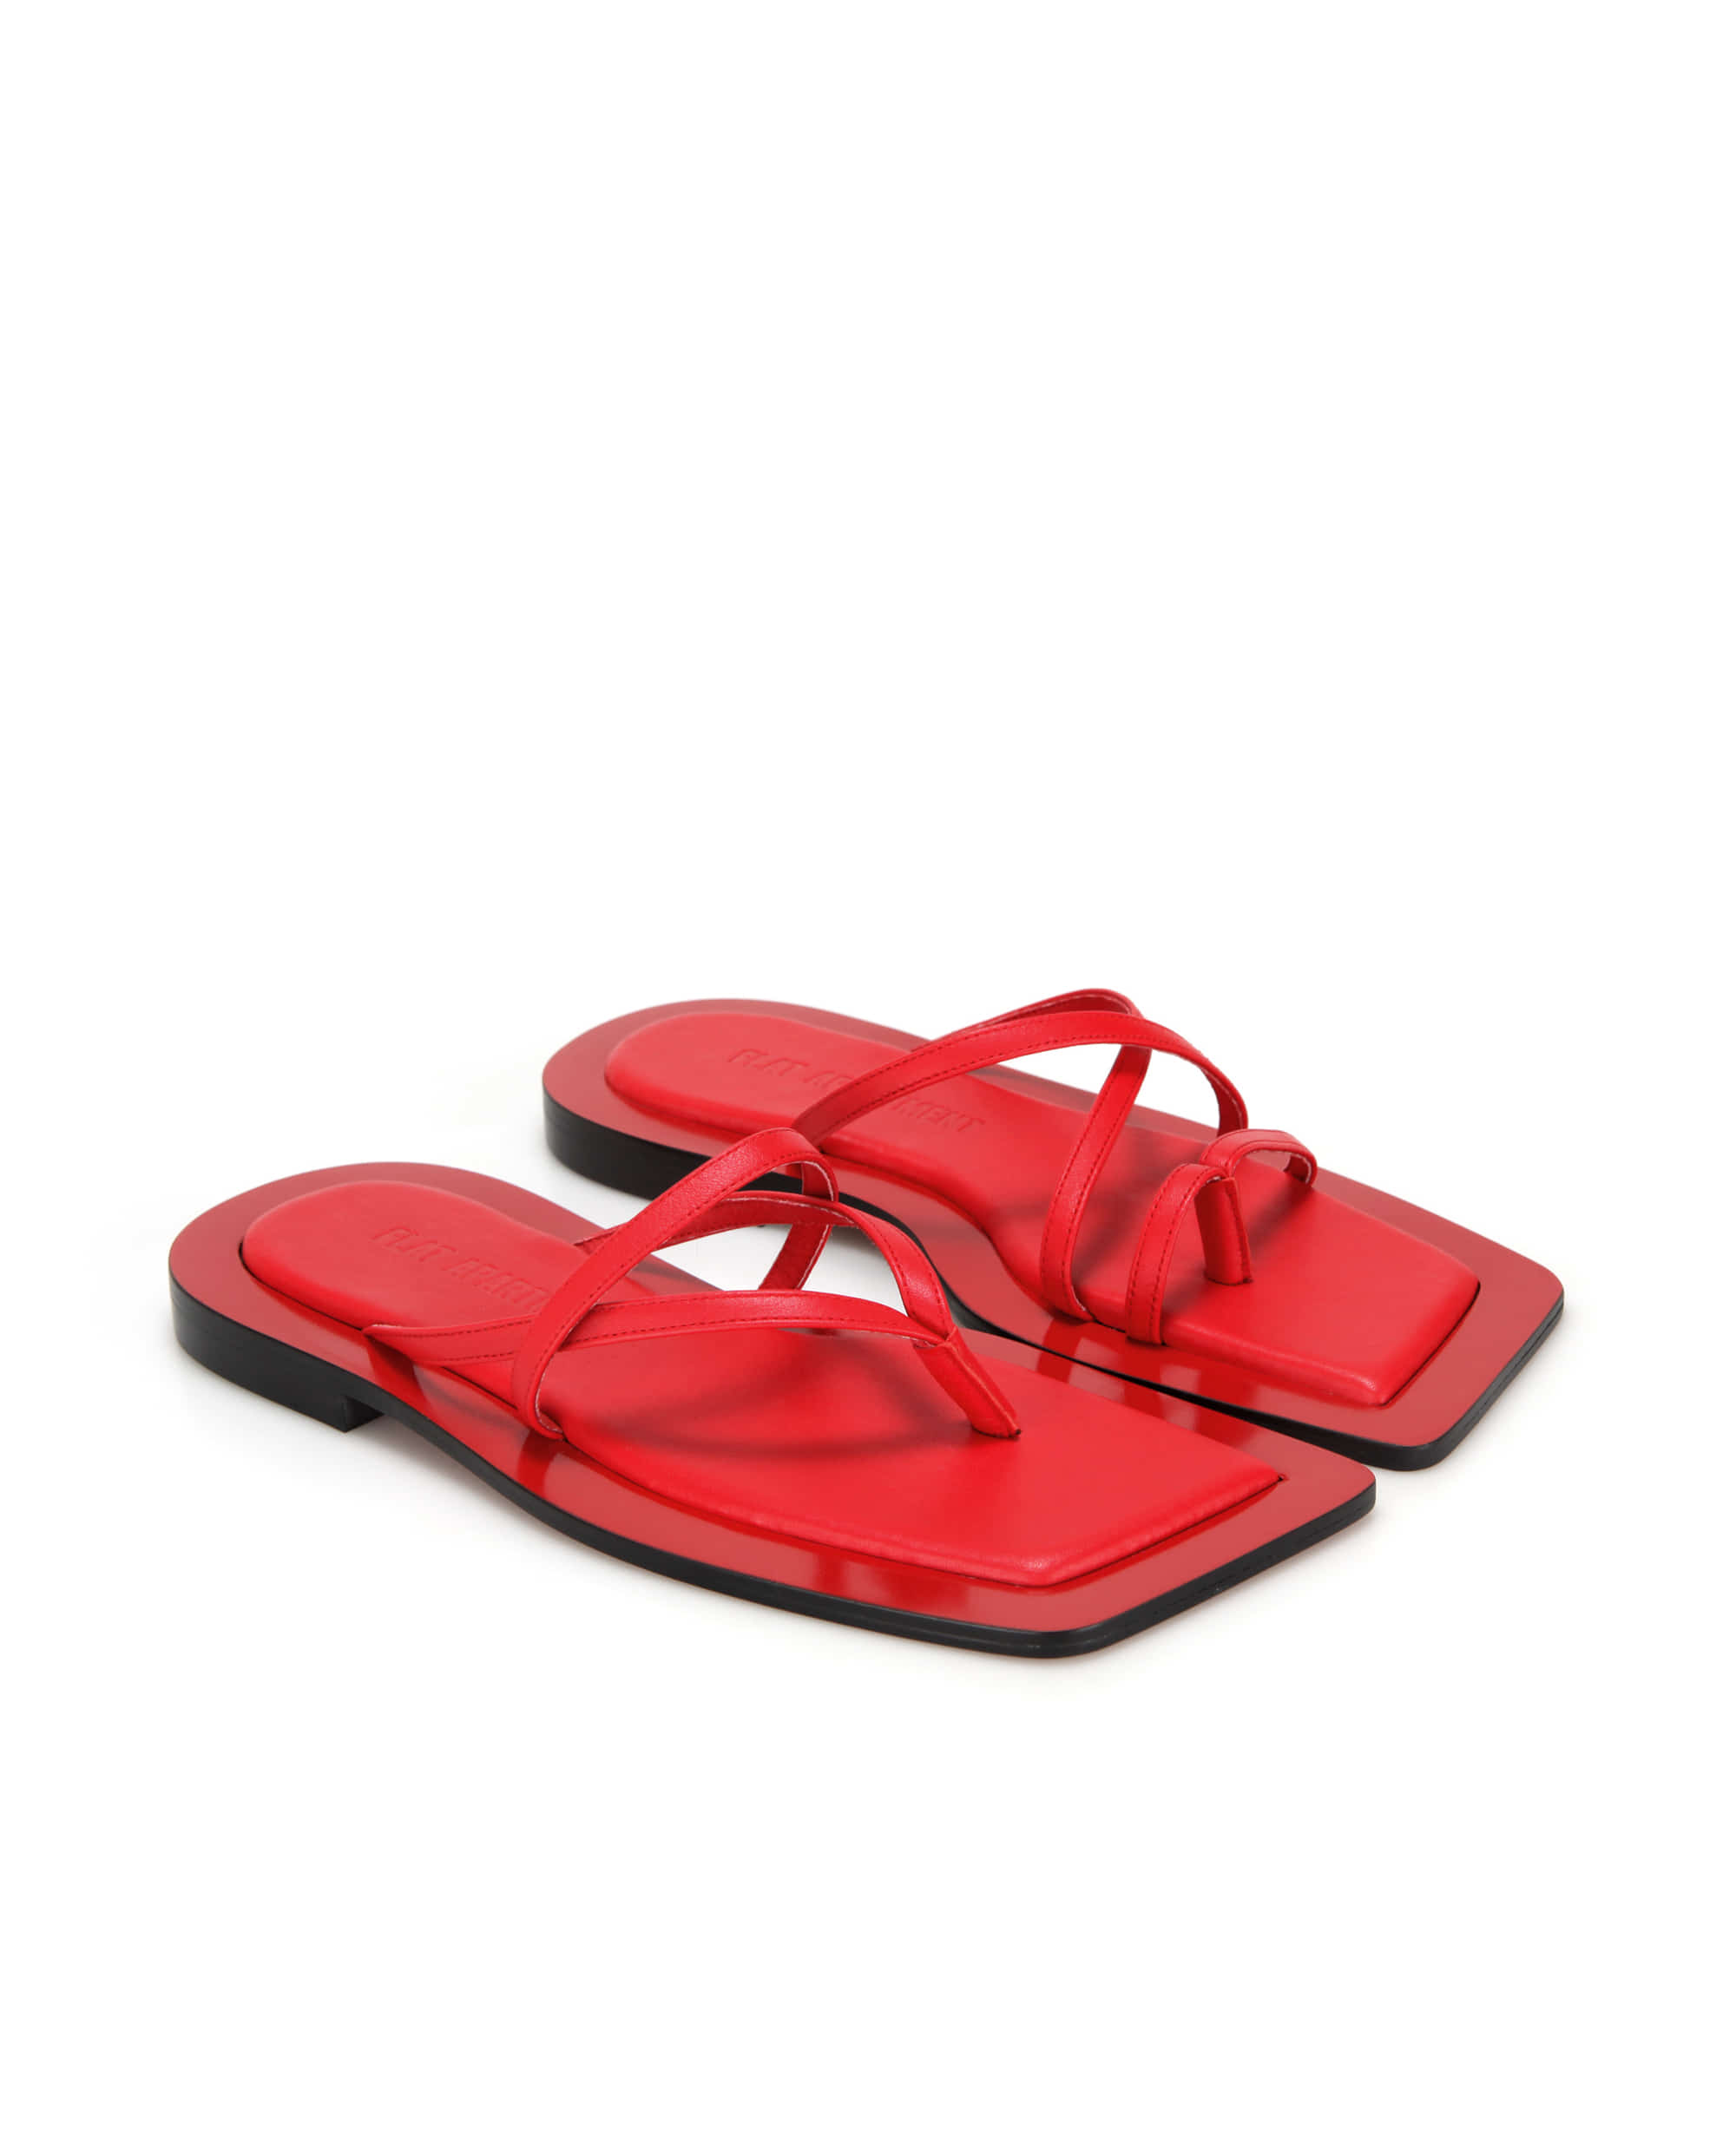 Wide square sole sandals | Red